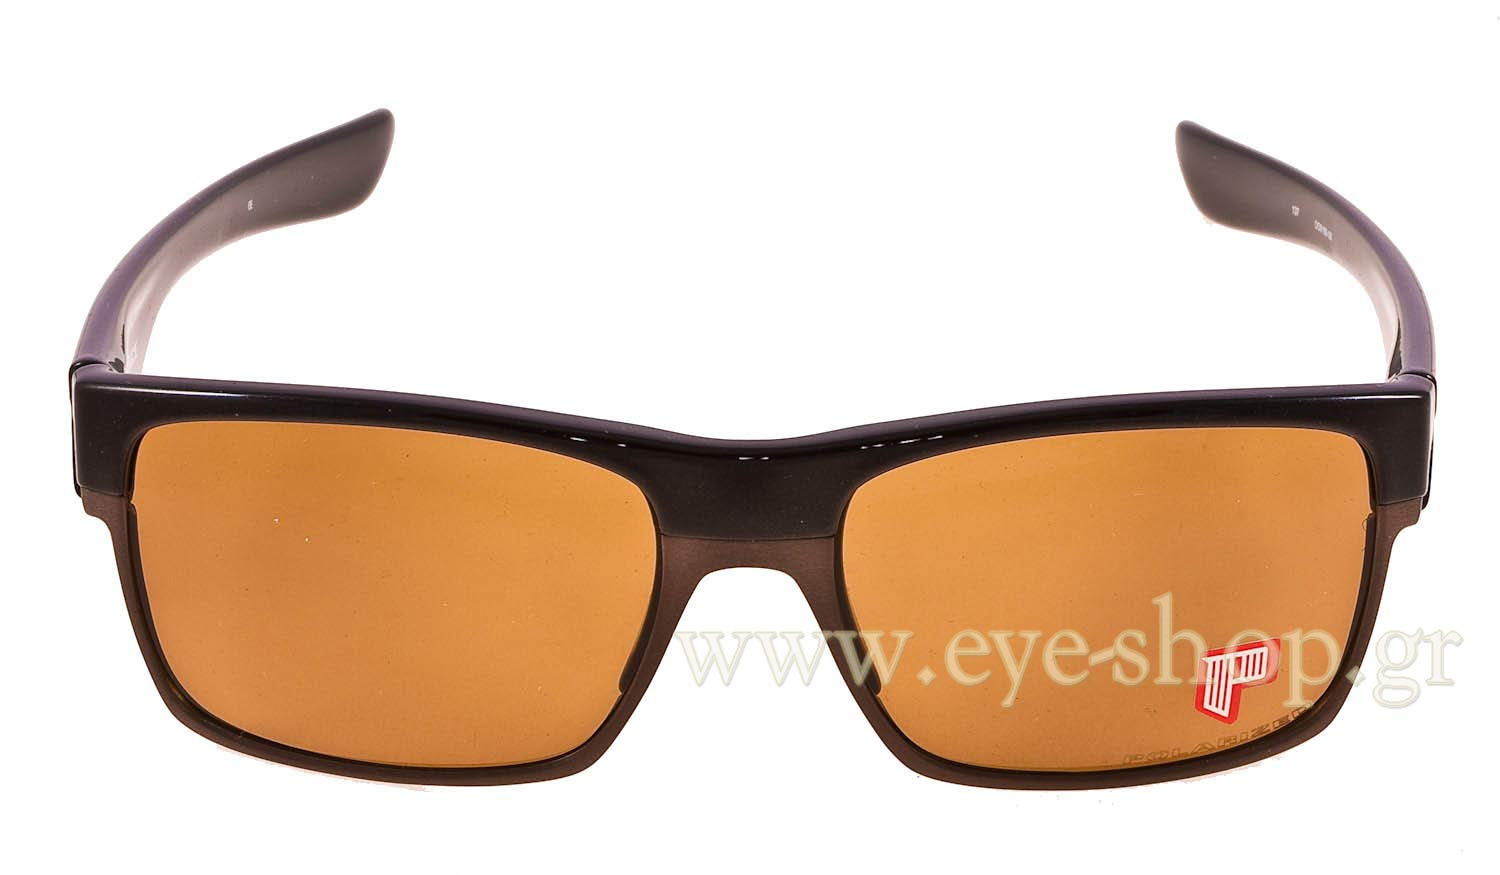 4c14513fde8 SUNGLASSES Oakley TwoFace 9189 9189 06 Polarized - Brown Sugar. Oakley  TwoFace 9189